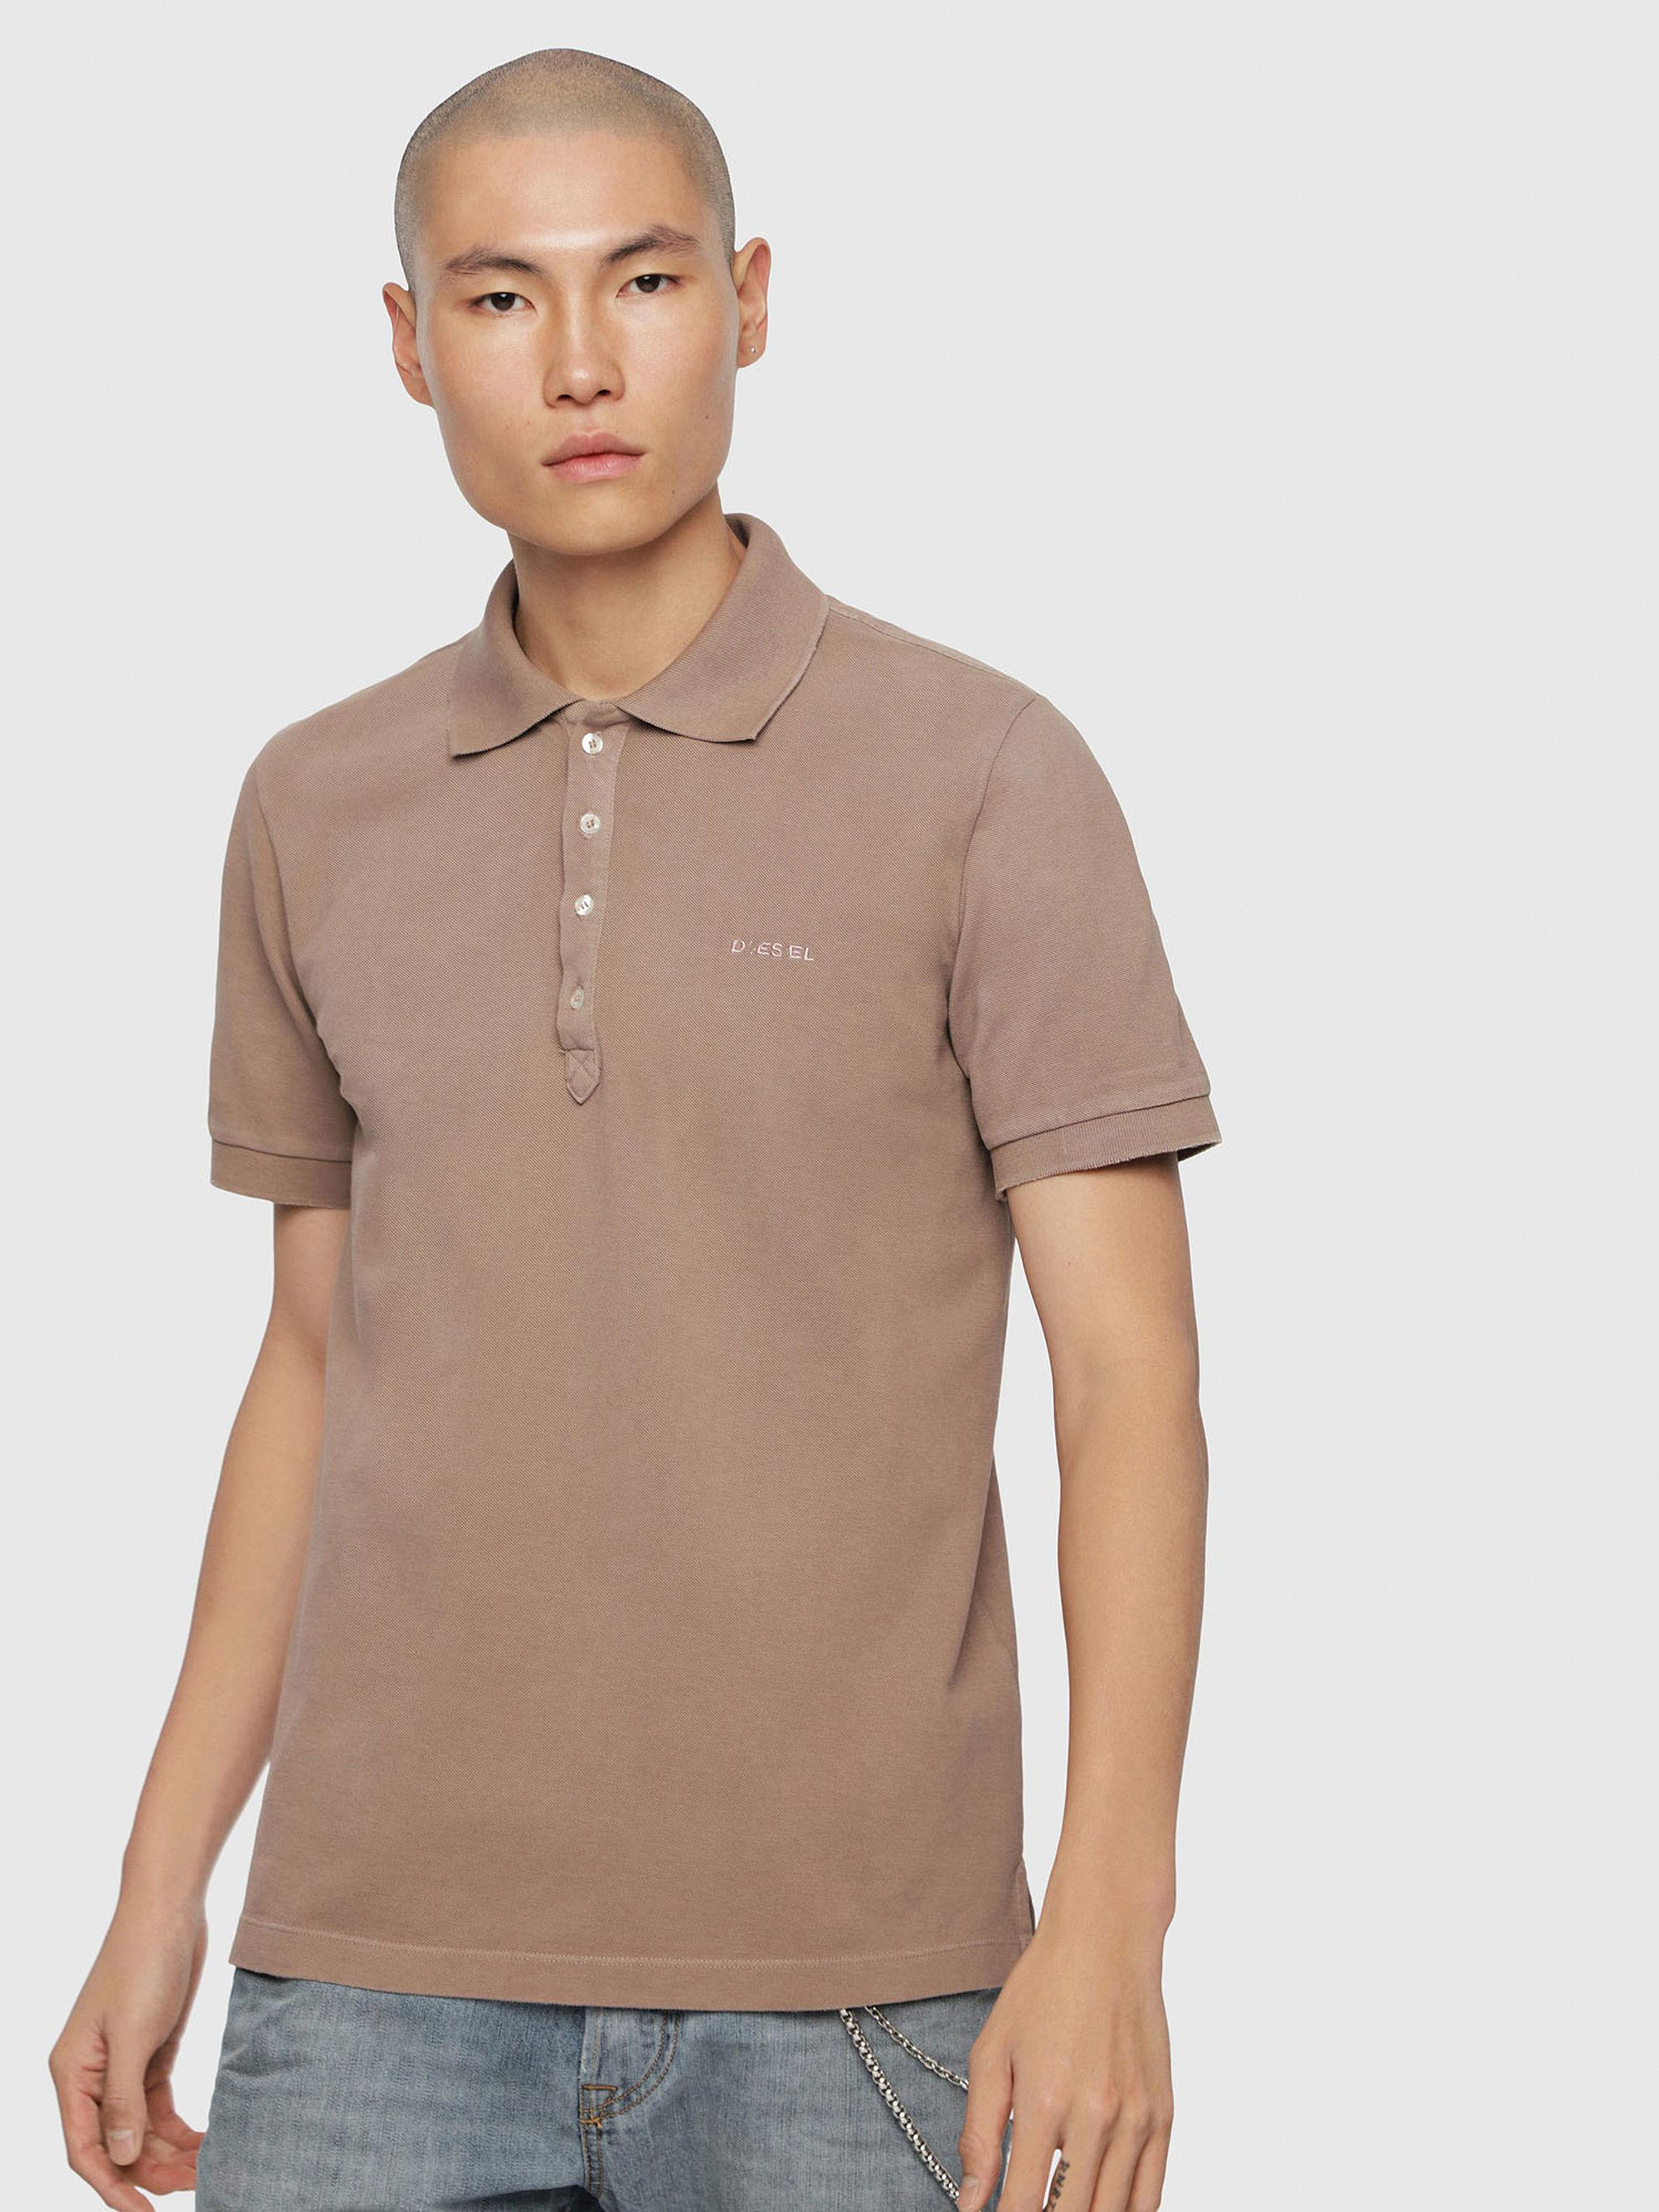 0e2ee431 Diesel Cotton Piquet Polo With Chest Logo for Men - Lyst